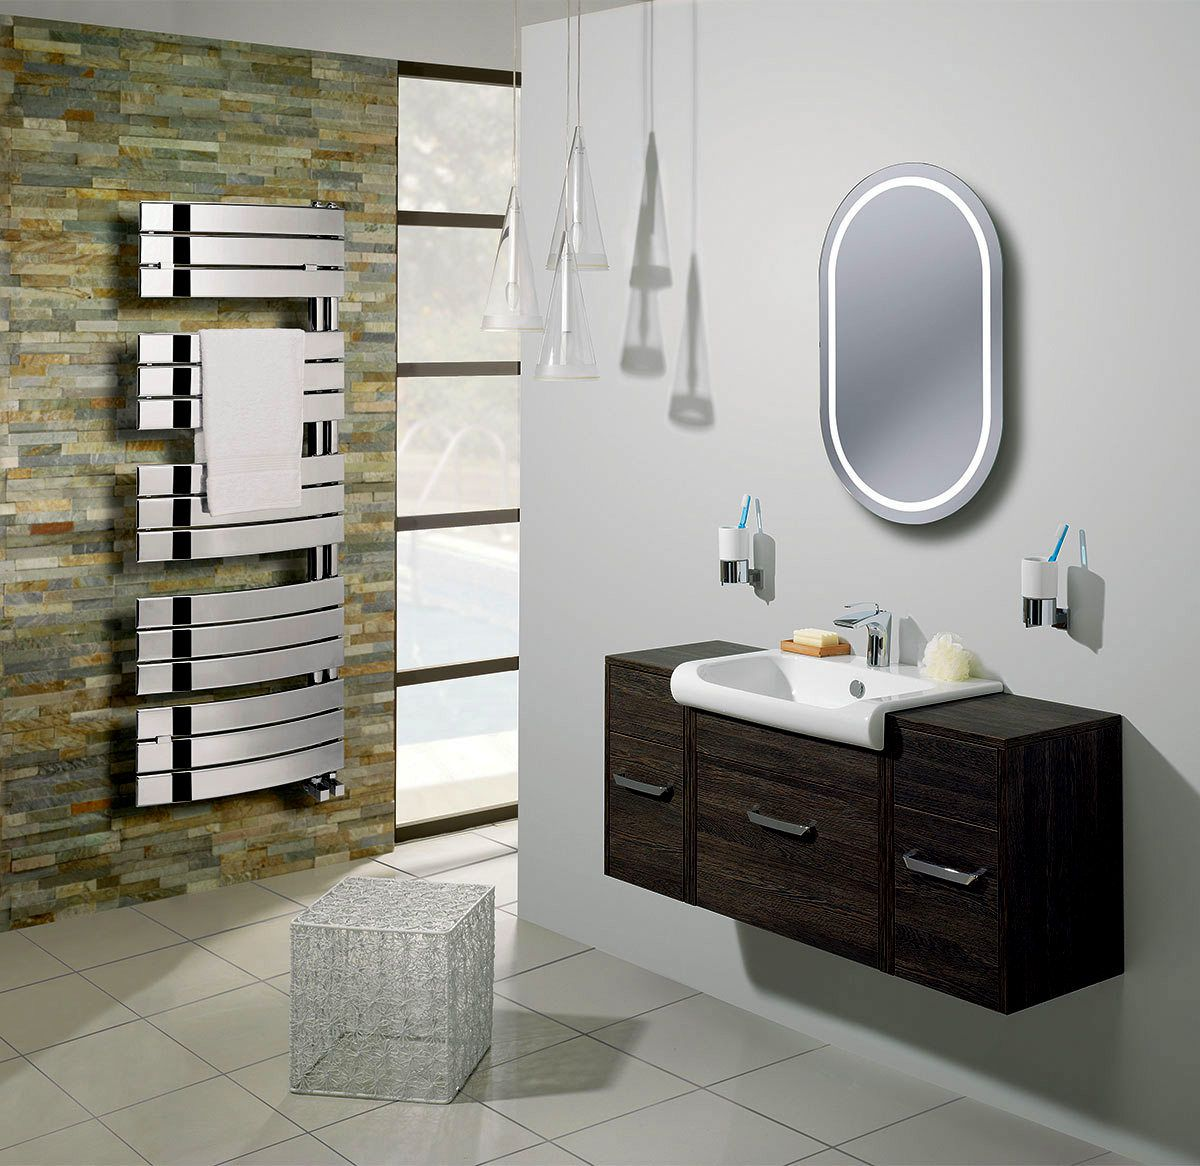 Bauhaus Essence Curved Flat Panel Towel Warmer